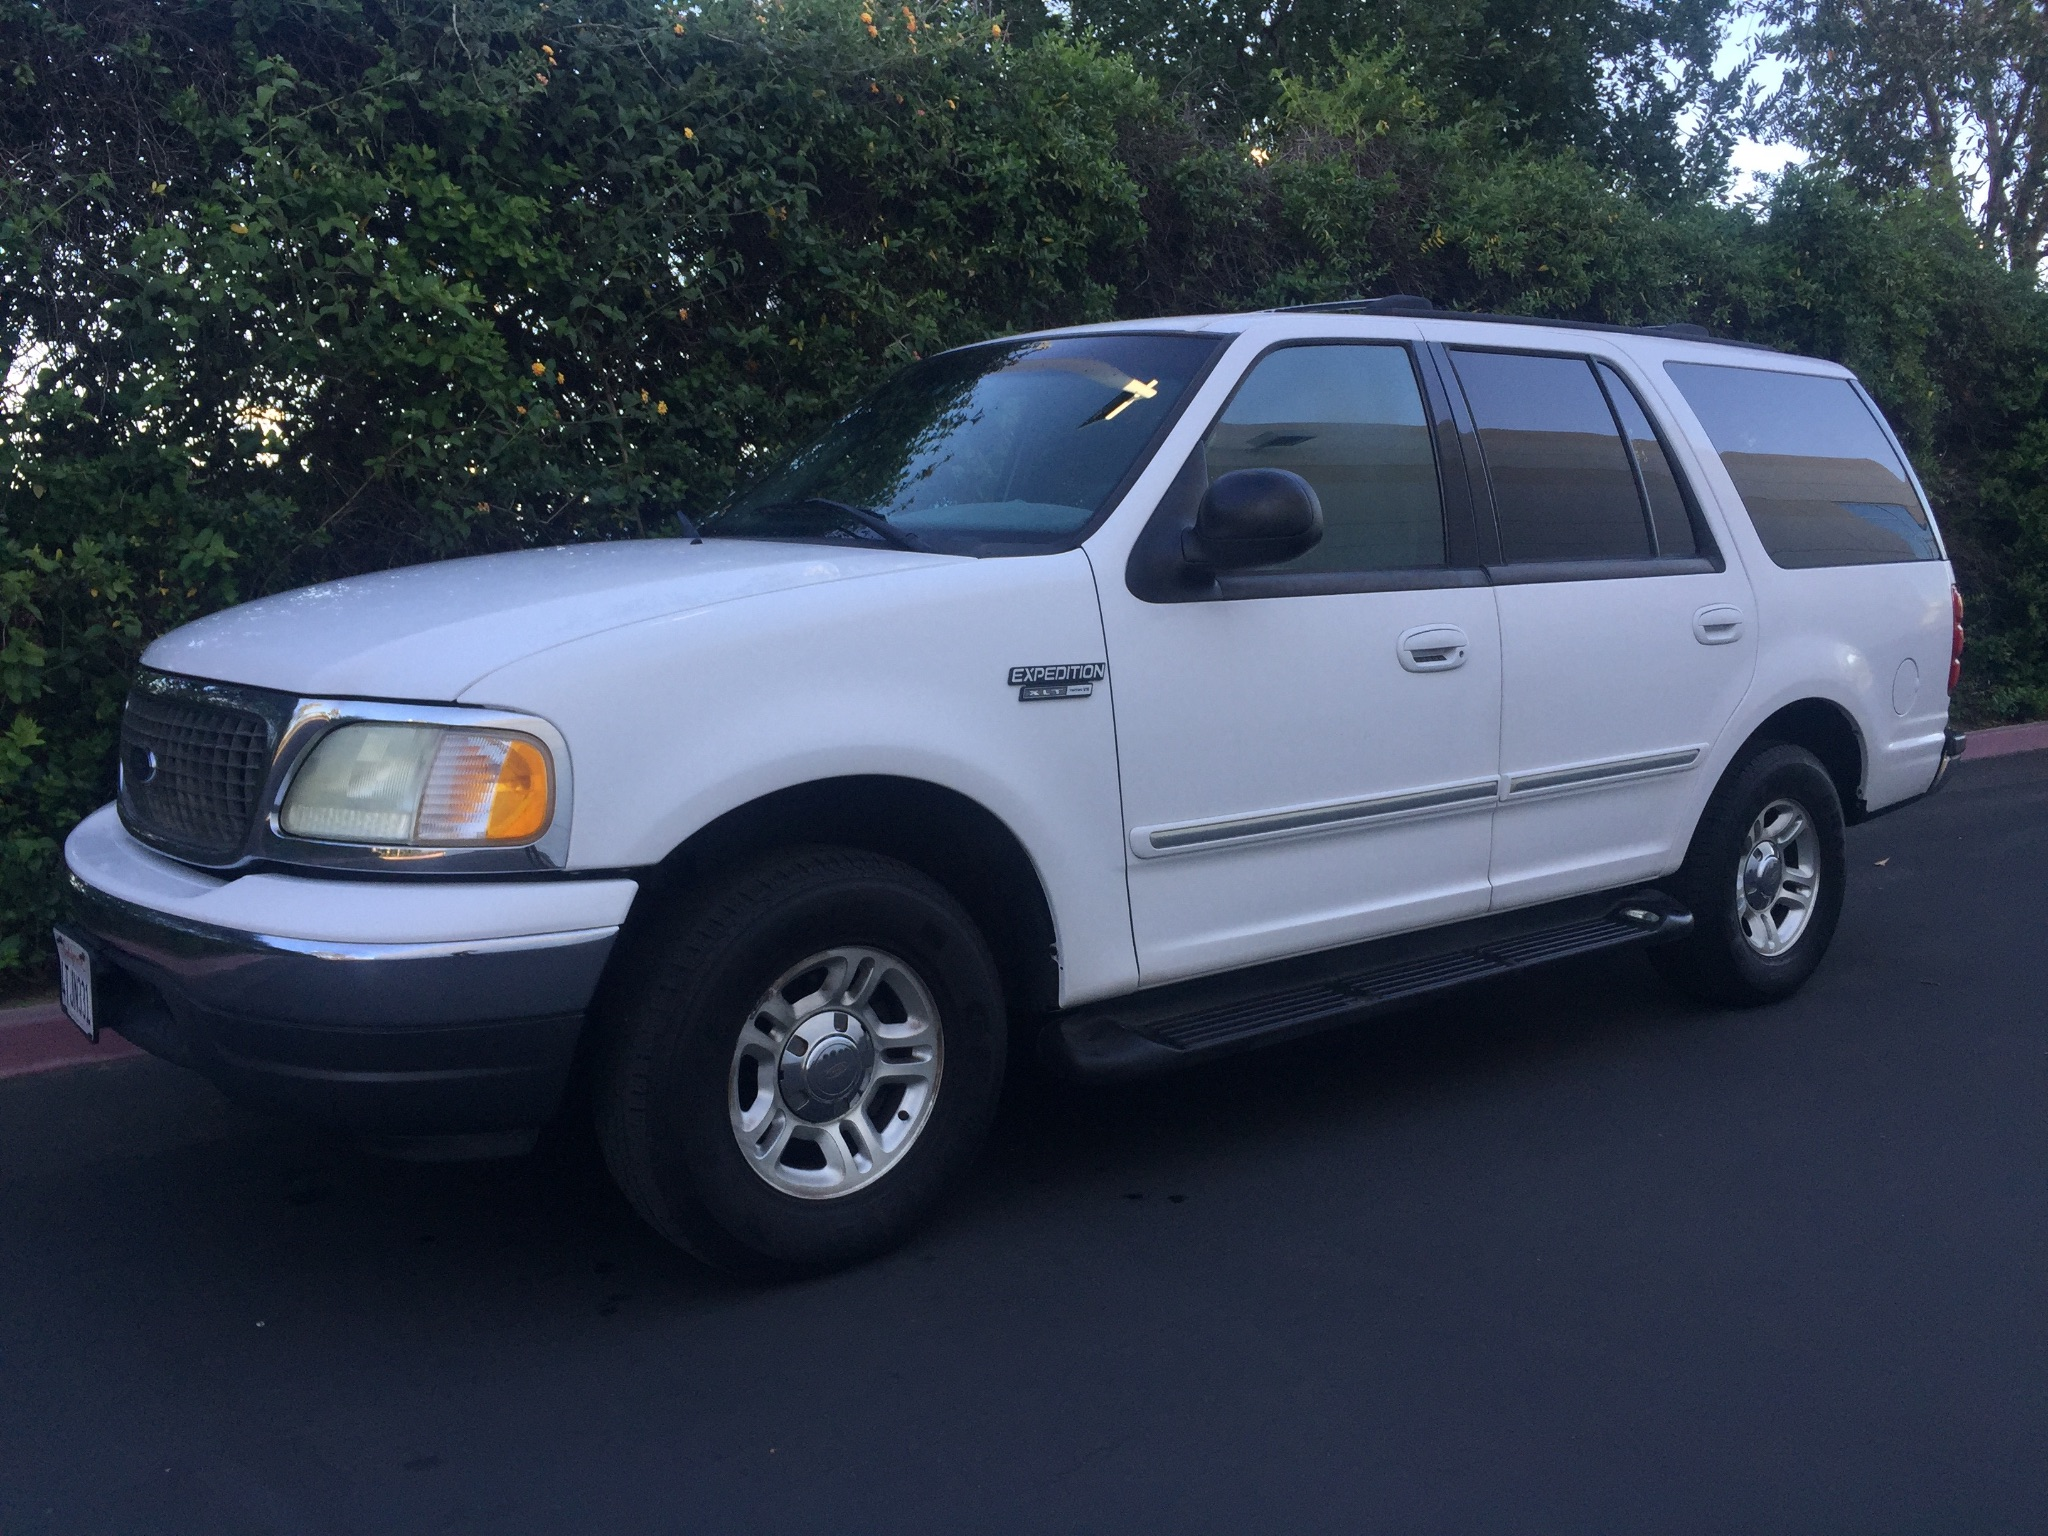 used 2001 ford expedition xlt at city cars warehouse inc. Black Bedroom Furniture Sets. Home Design Ideas